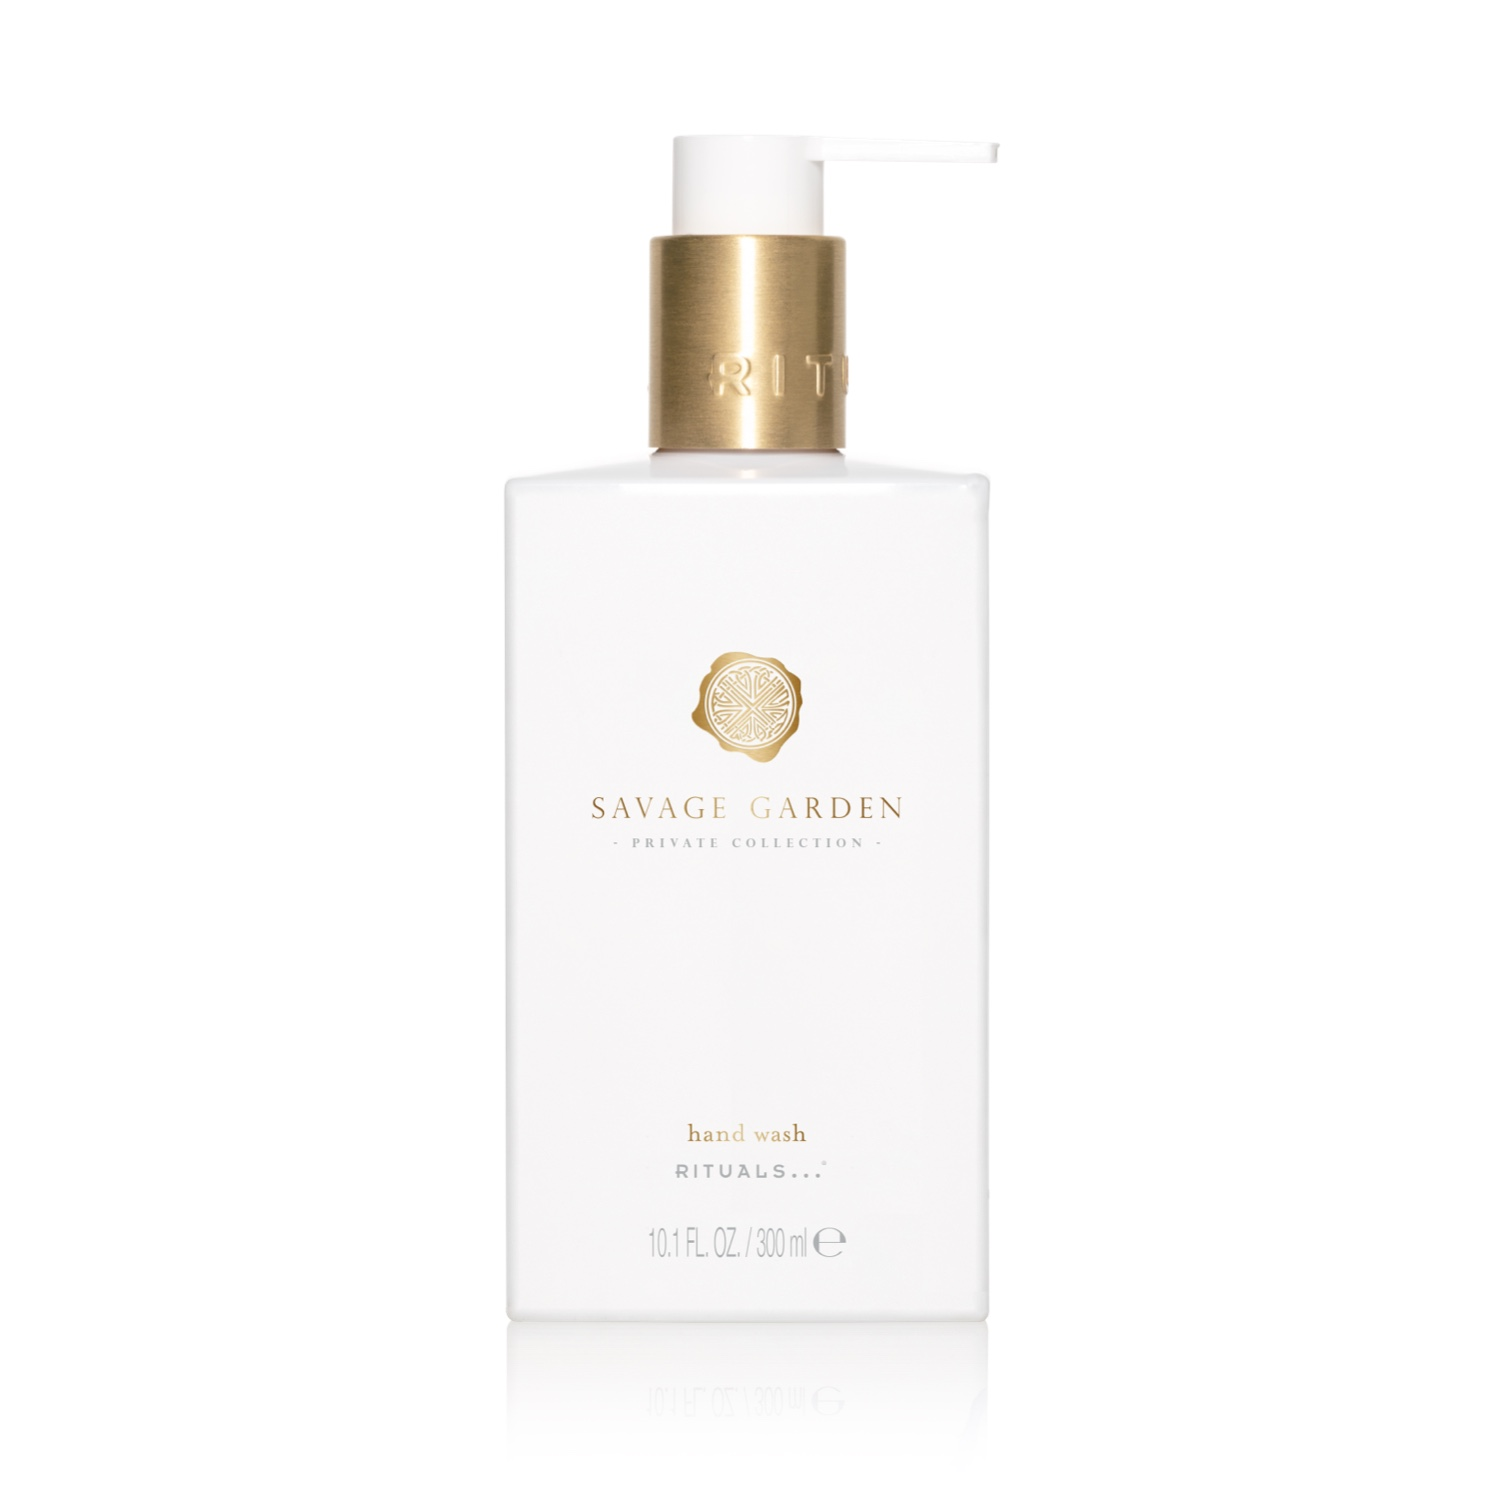 Rituals Private Collection Savage Garden Hand Wash, 300 ml